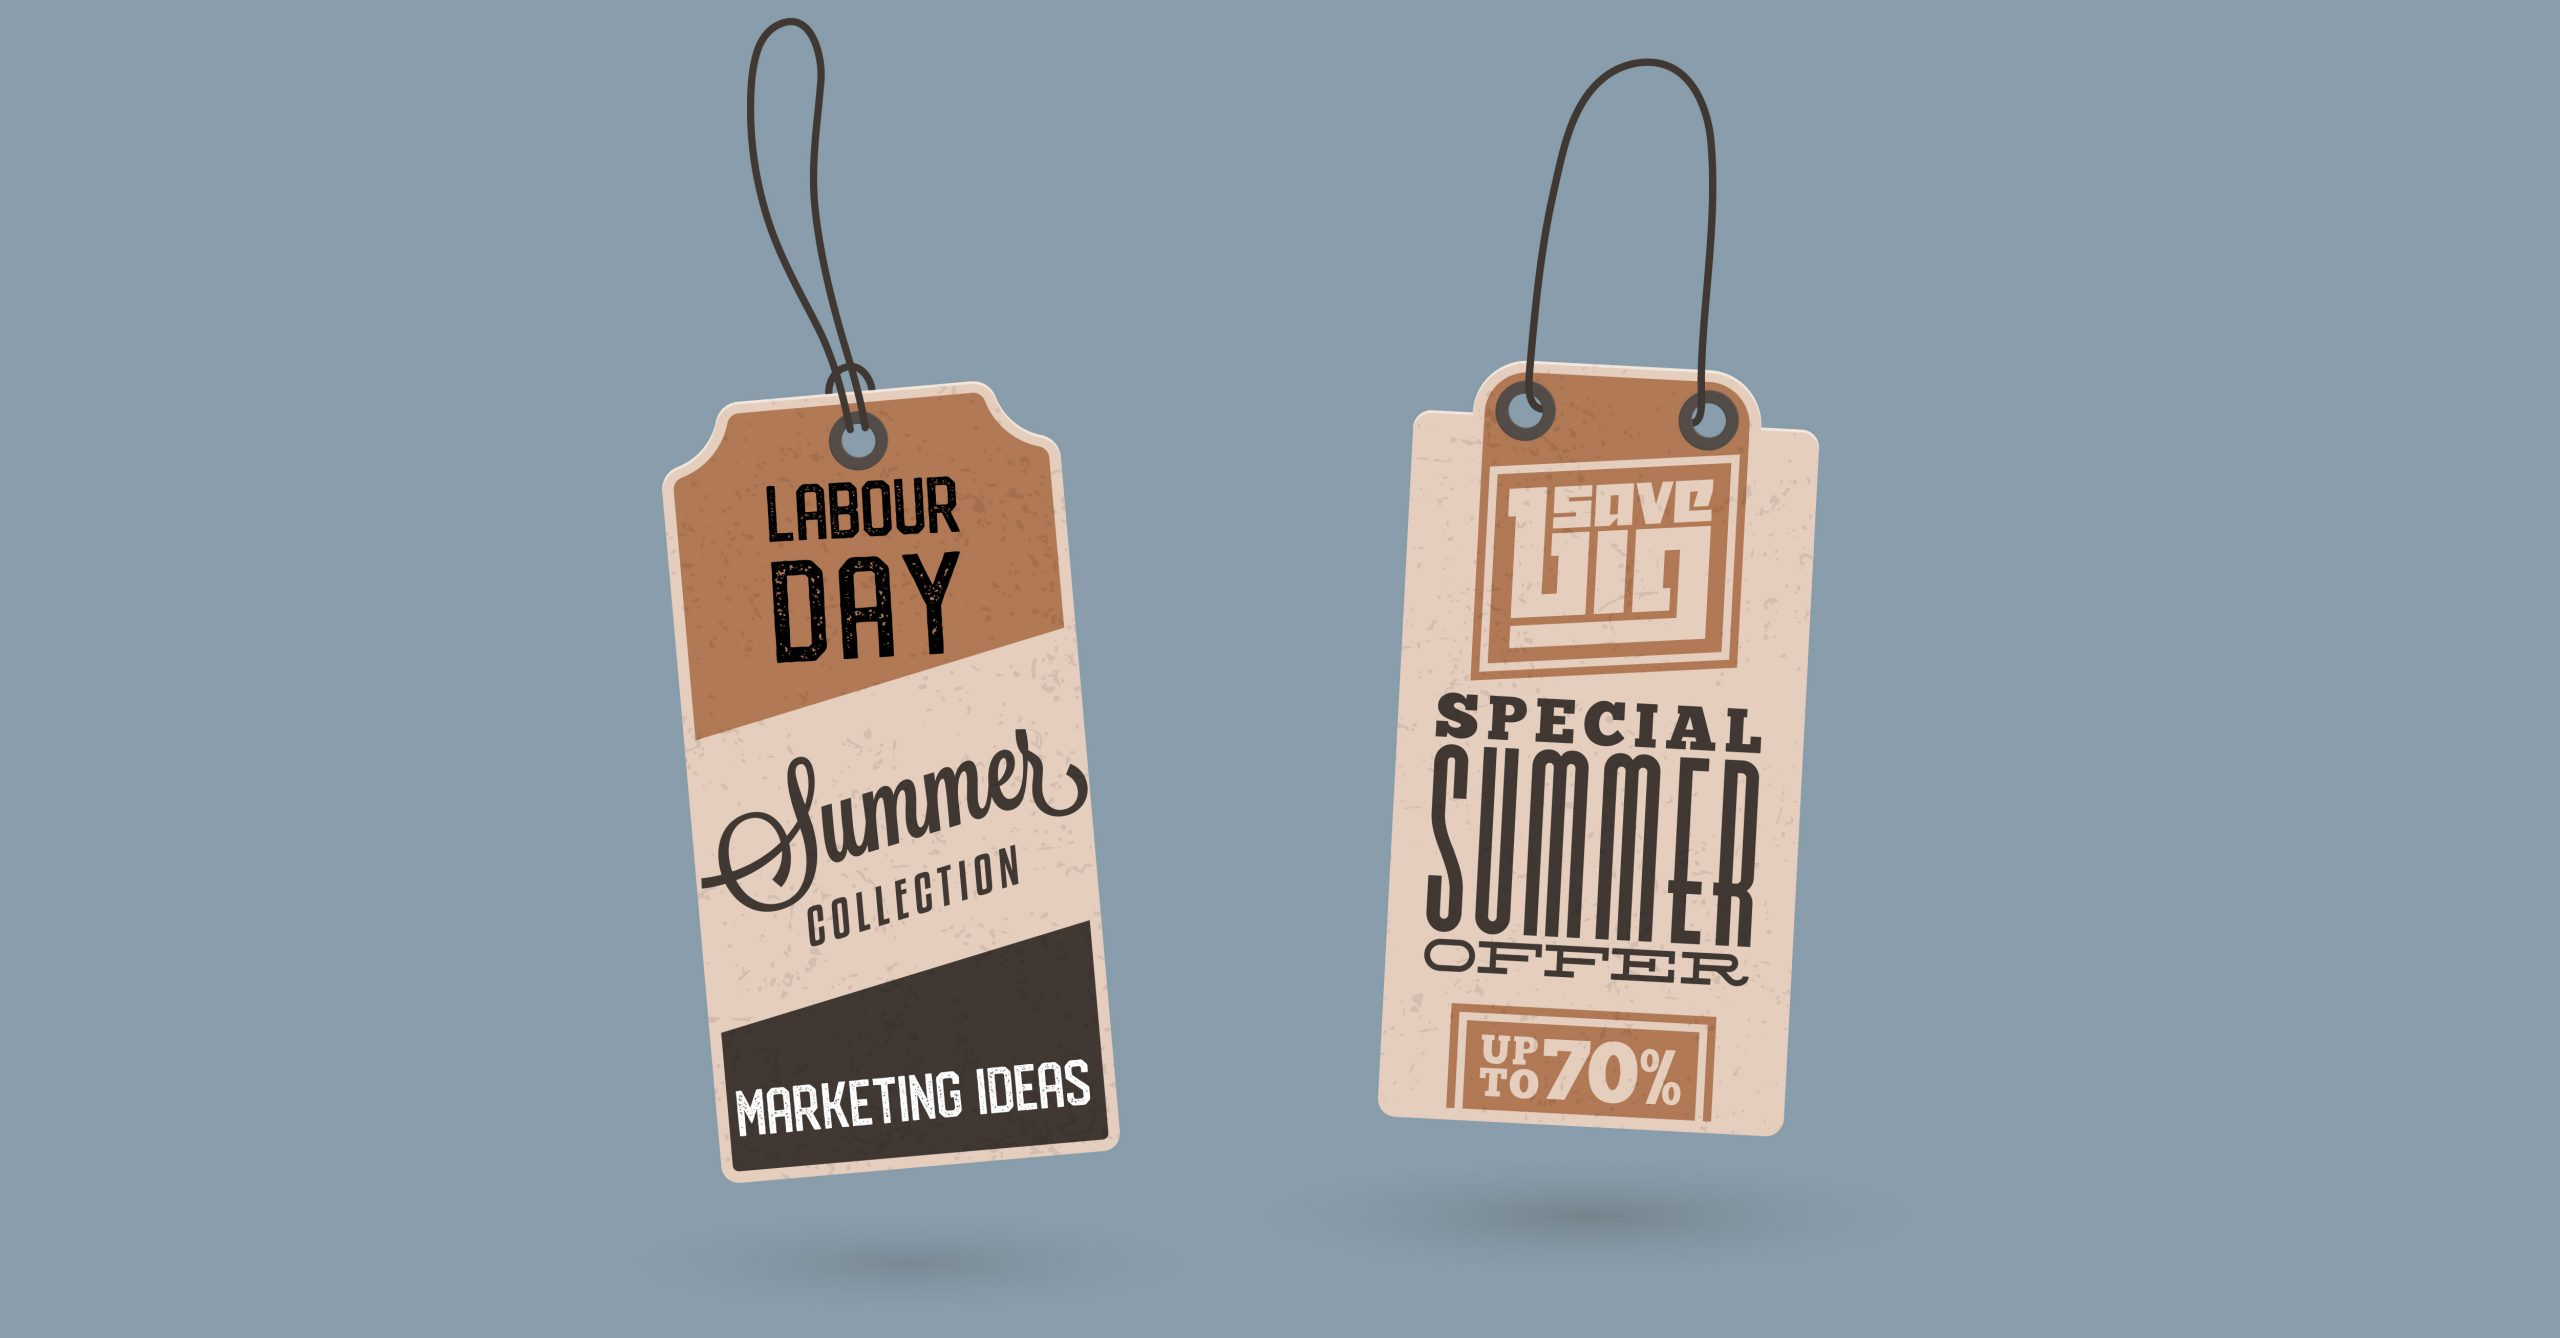 3 Marketing Ideas To Promote Your Labour Day Sale